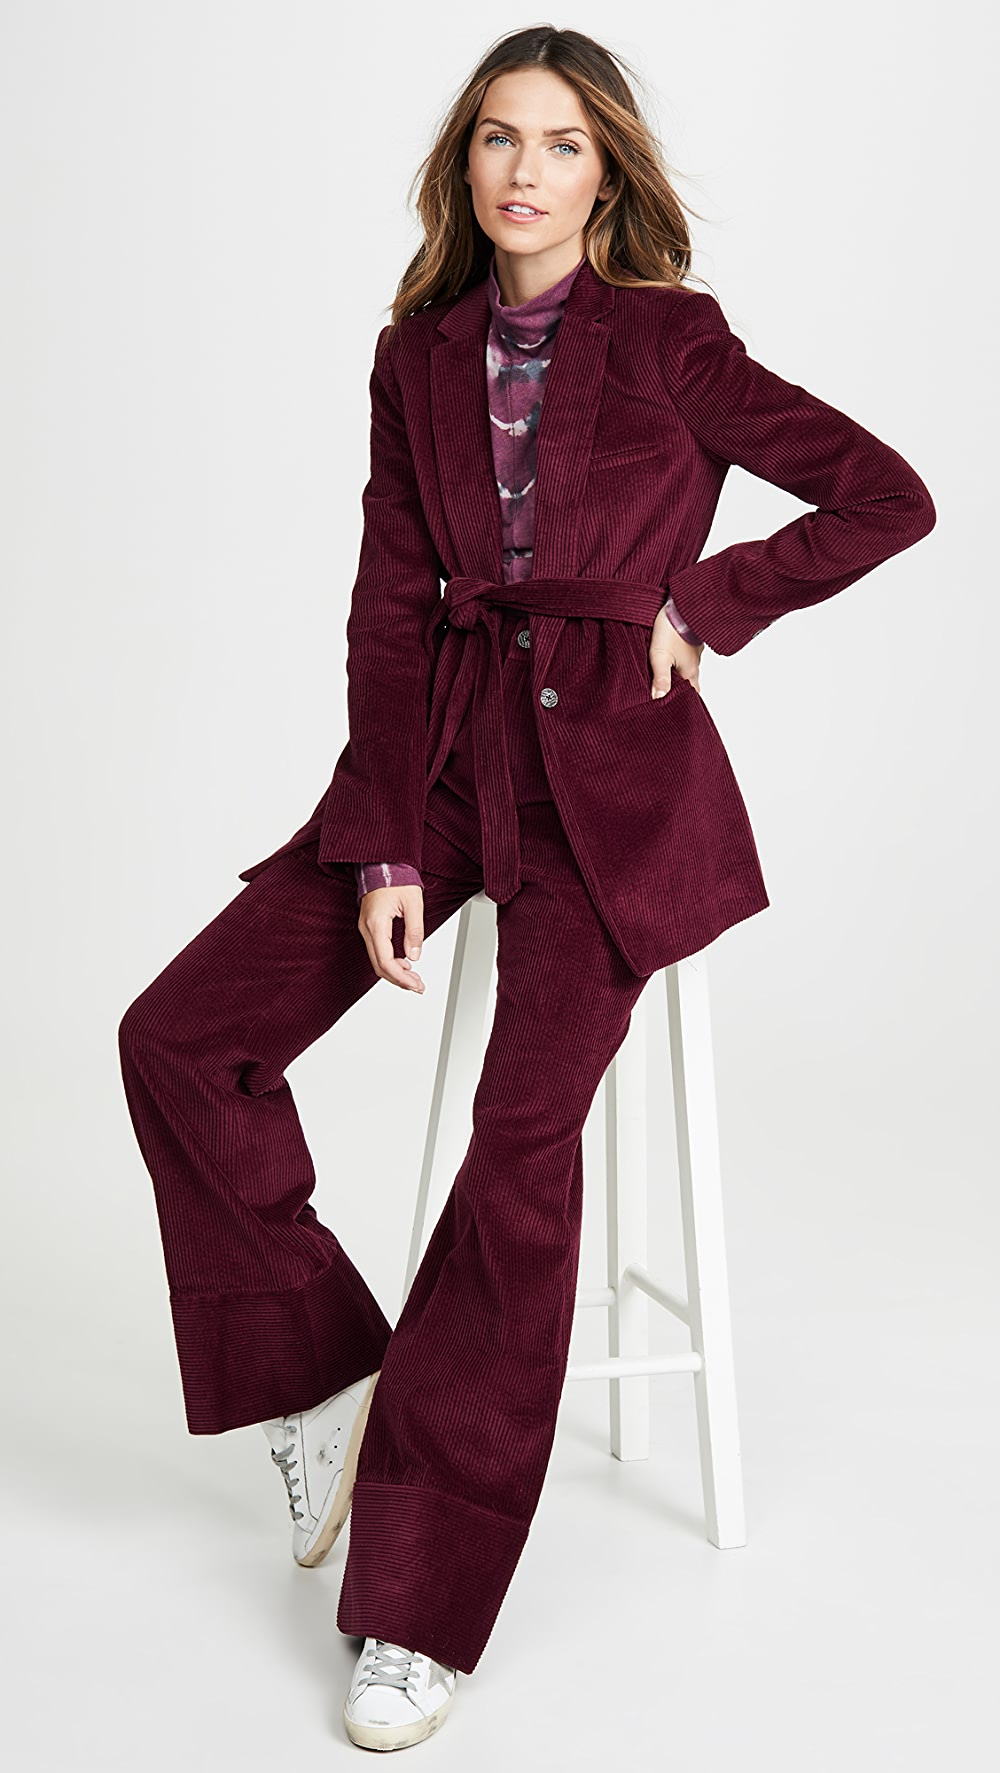 Trustful Laveer - Annie Trousers 50% OFF